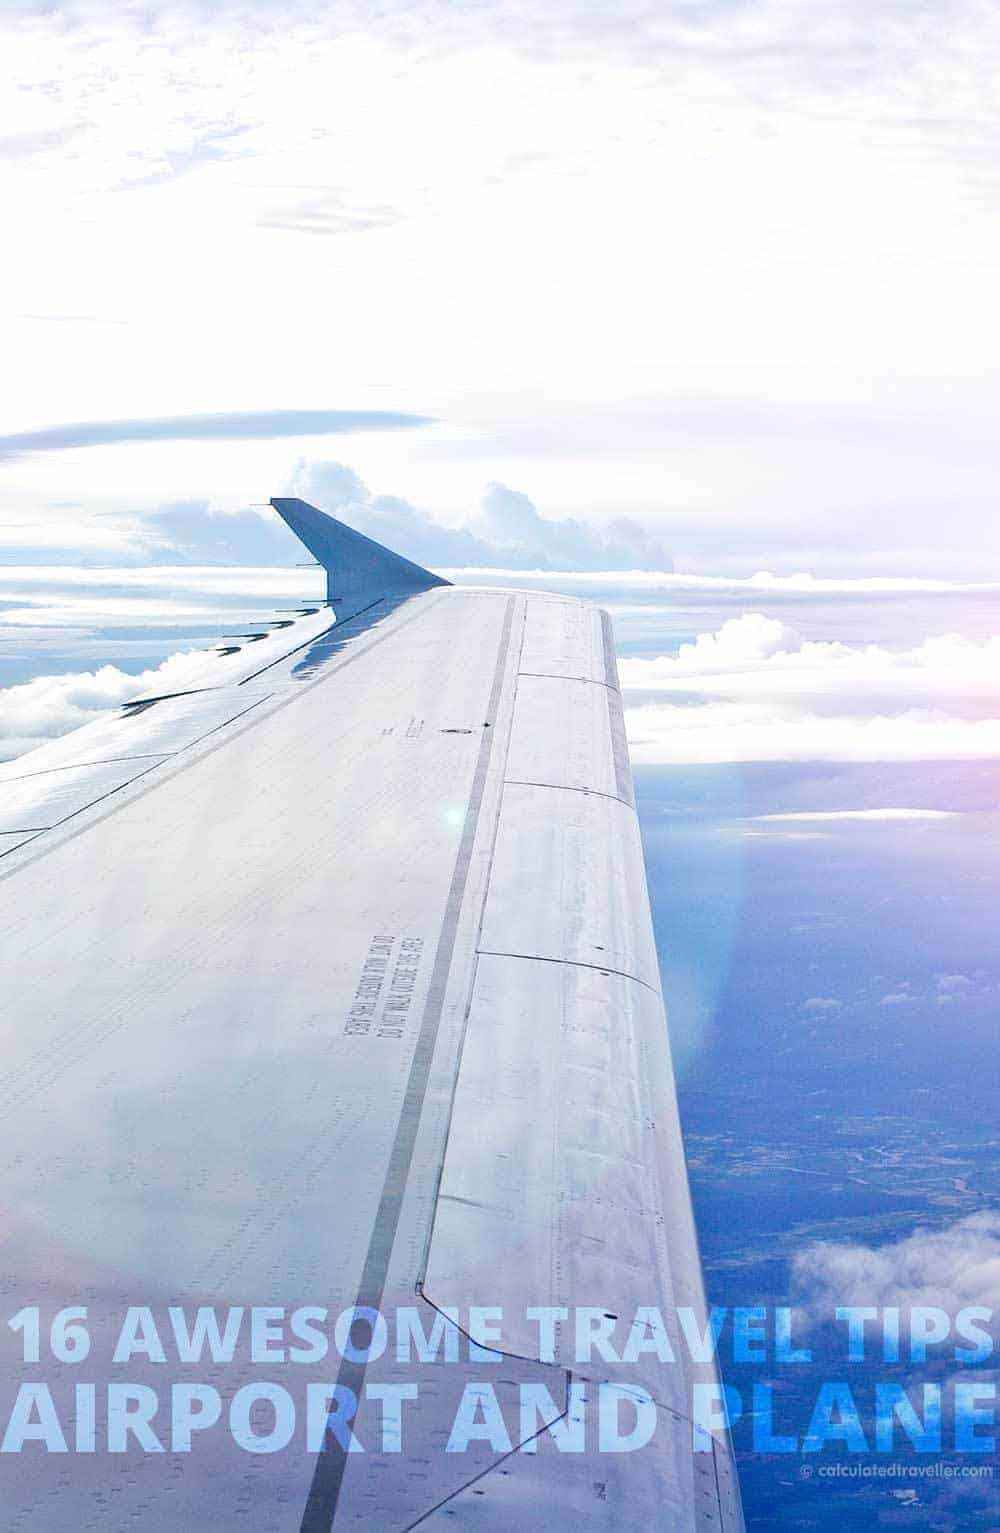 16 Awesome Airport and Airplane Travel Tips by Calculated Traveller Magazine